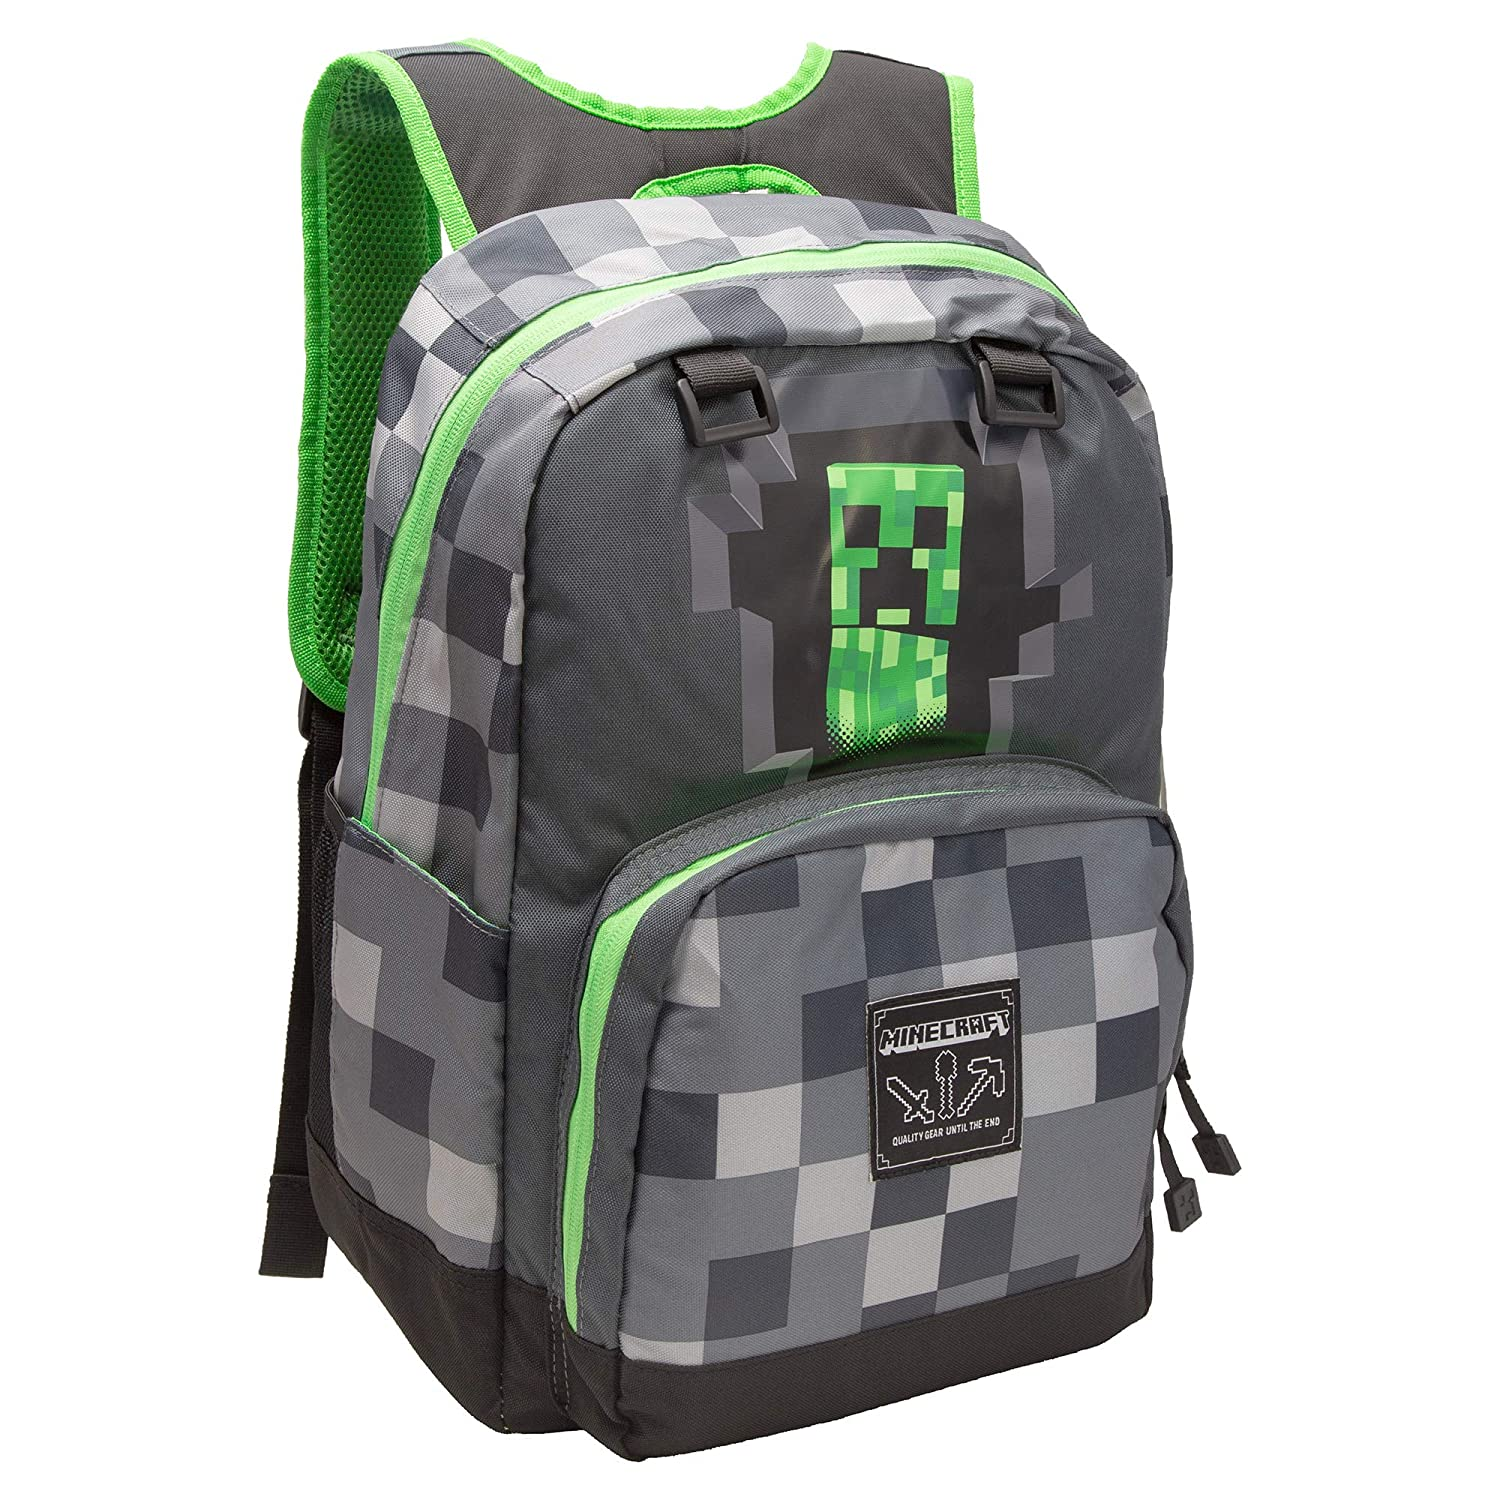 JINX Minecraft Creepy Creeper Kids Backpack (Grey, 17) for School, Camping, Travel, Outdoors & Fun 17) for School